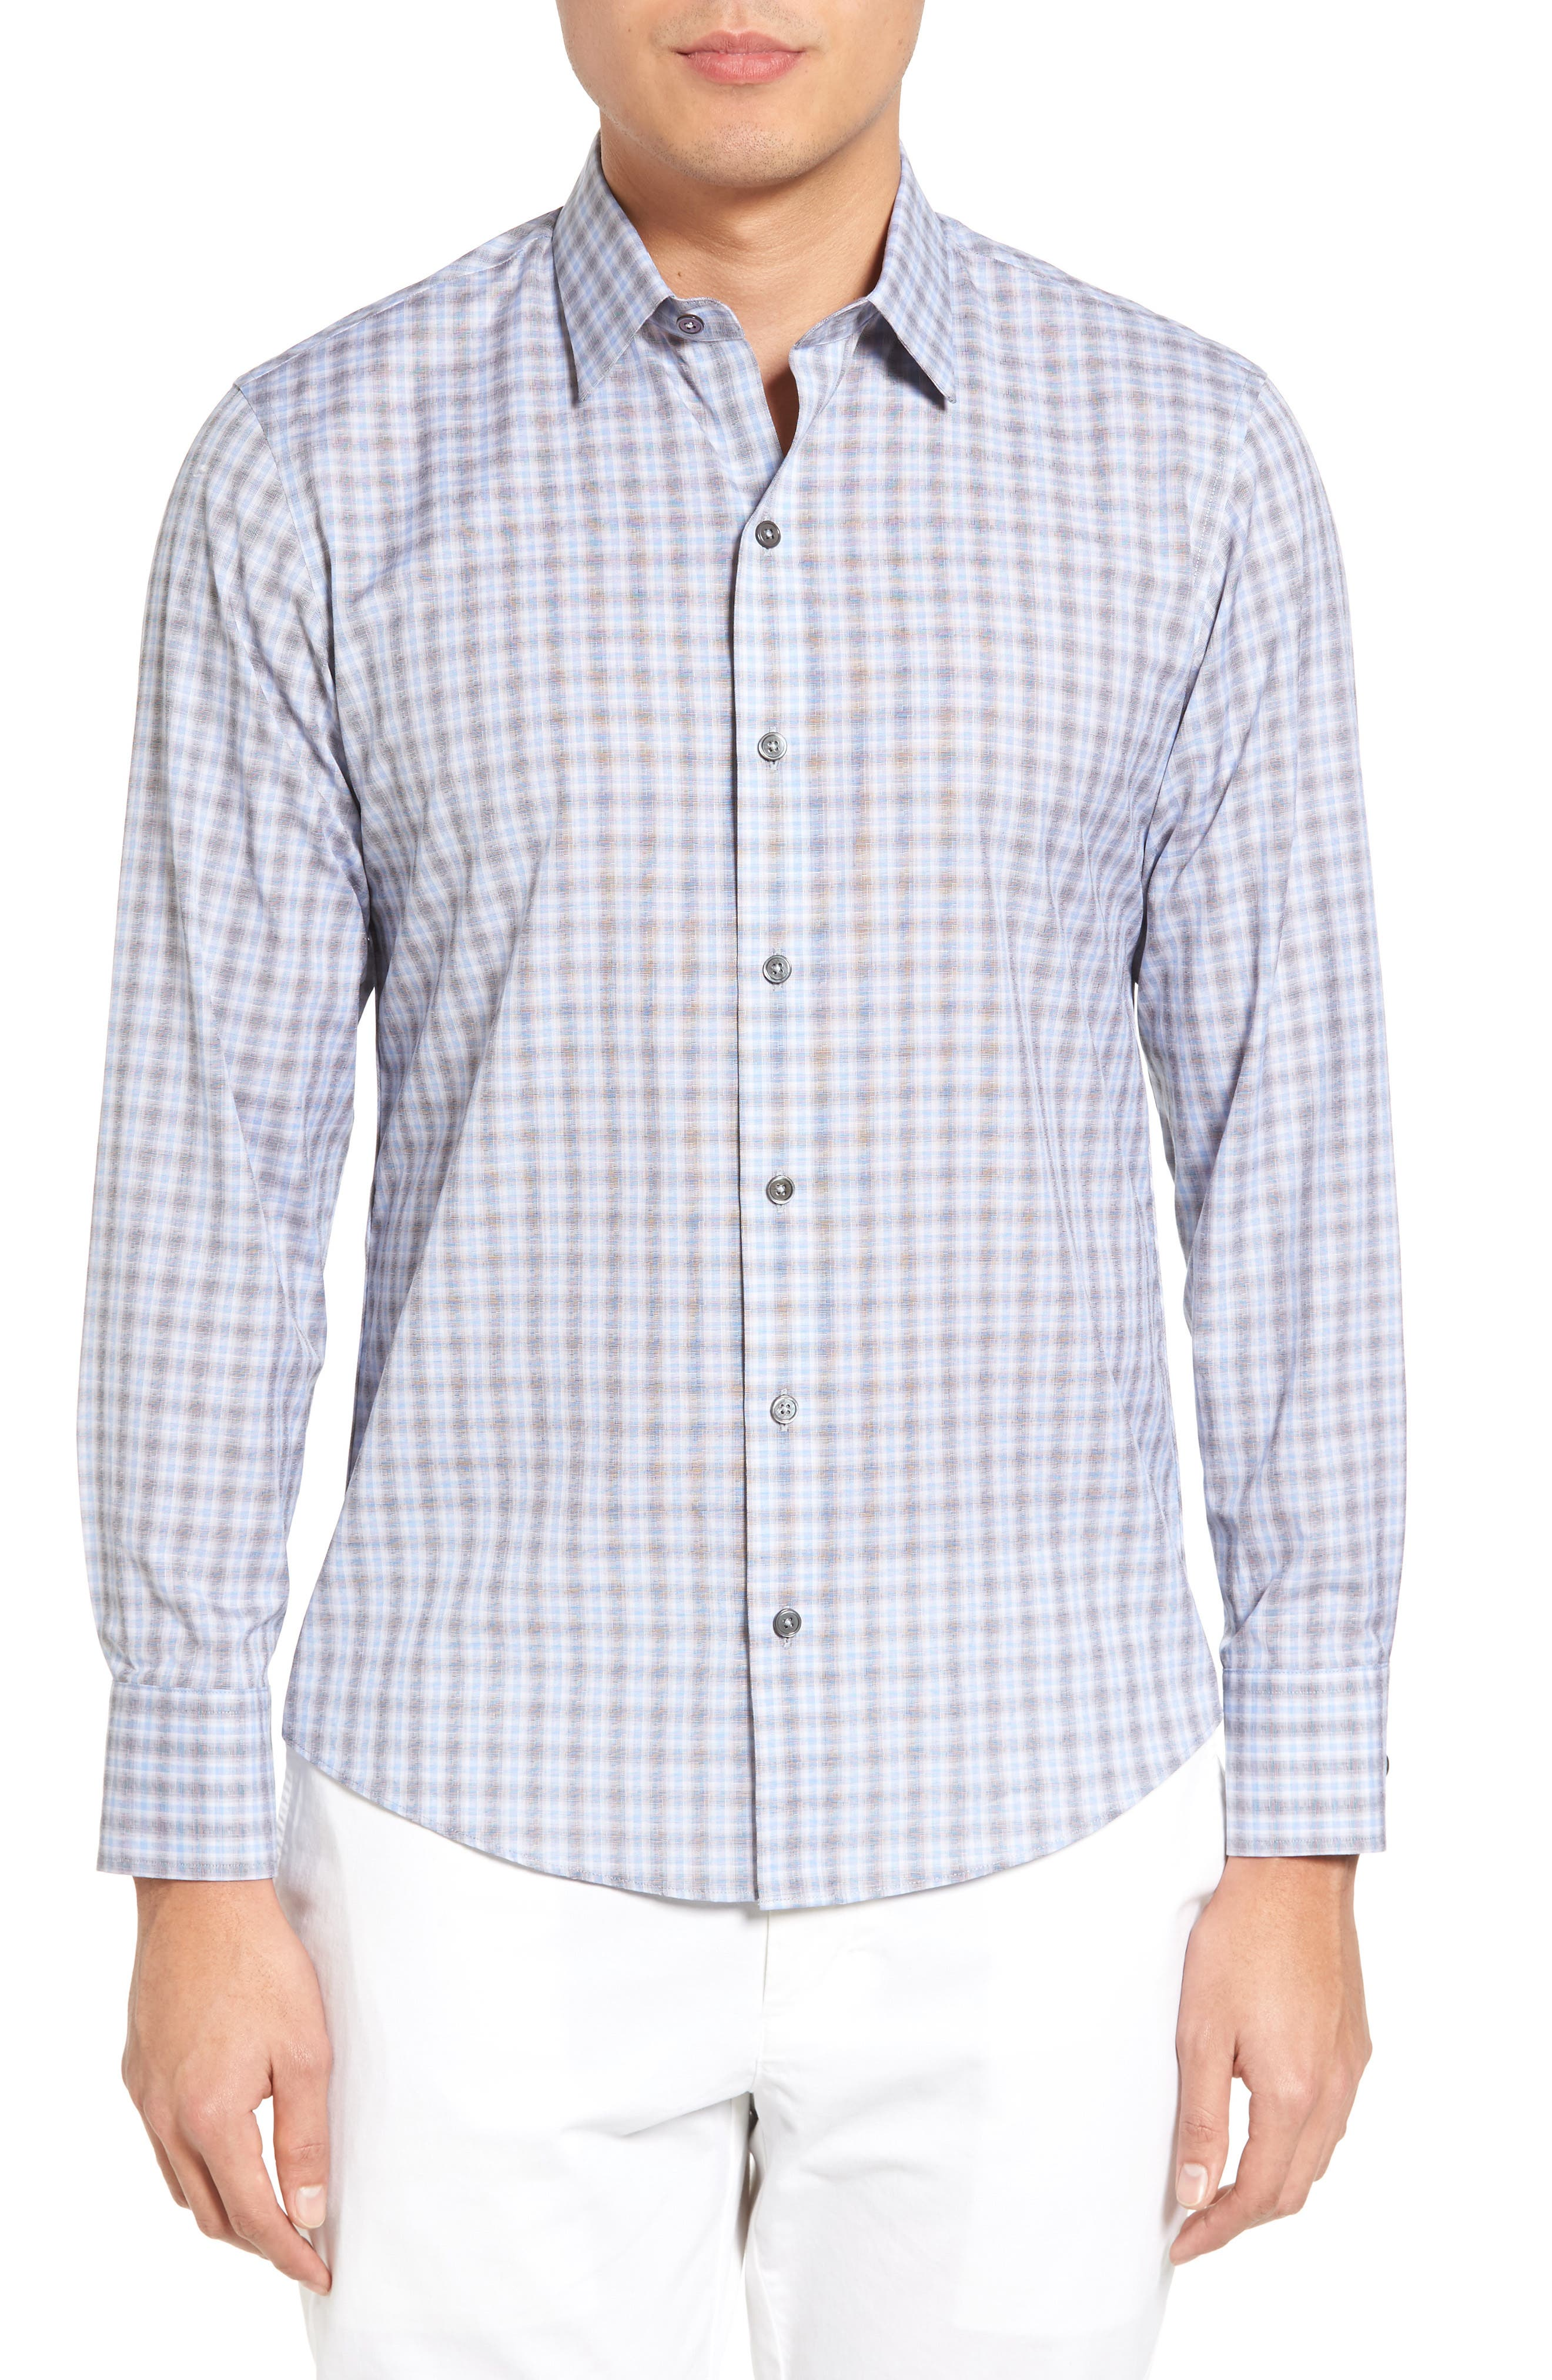 Cristiano Trim Fit Plaid Sport Shirt,                             Main thumbnail 1, color,                             Grey